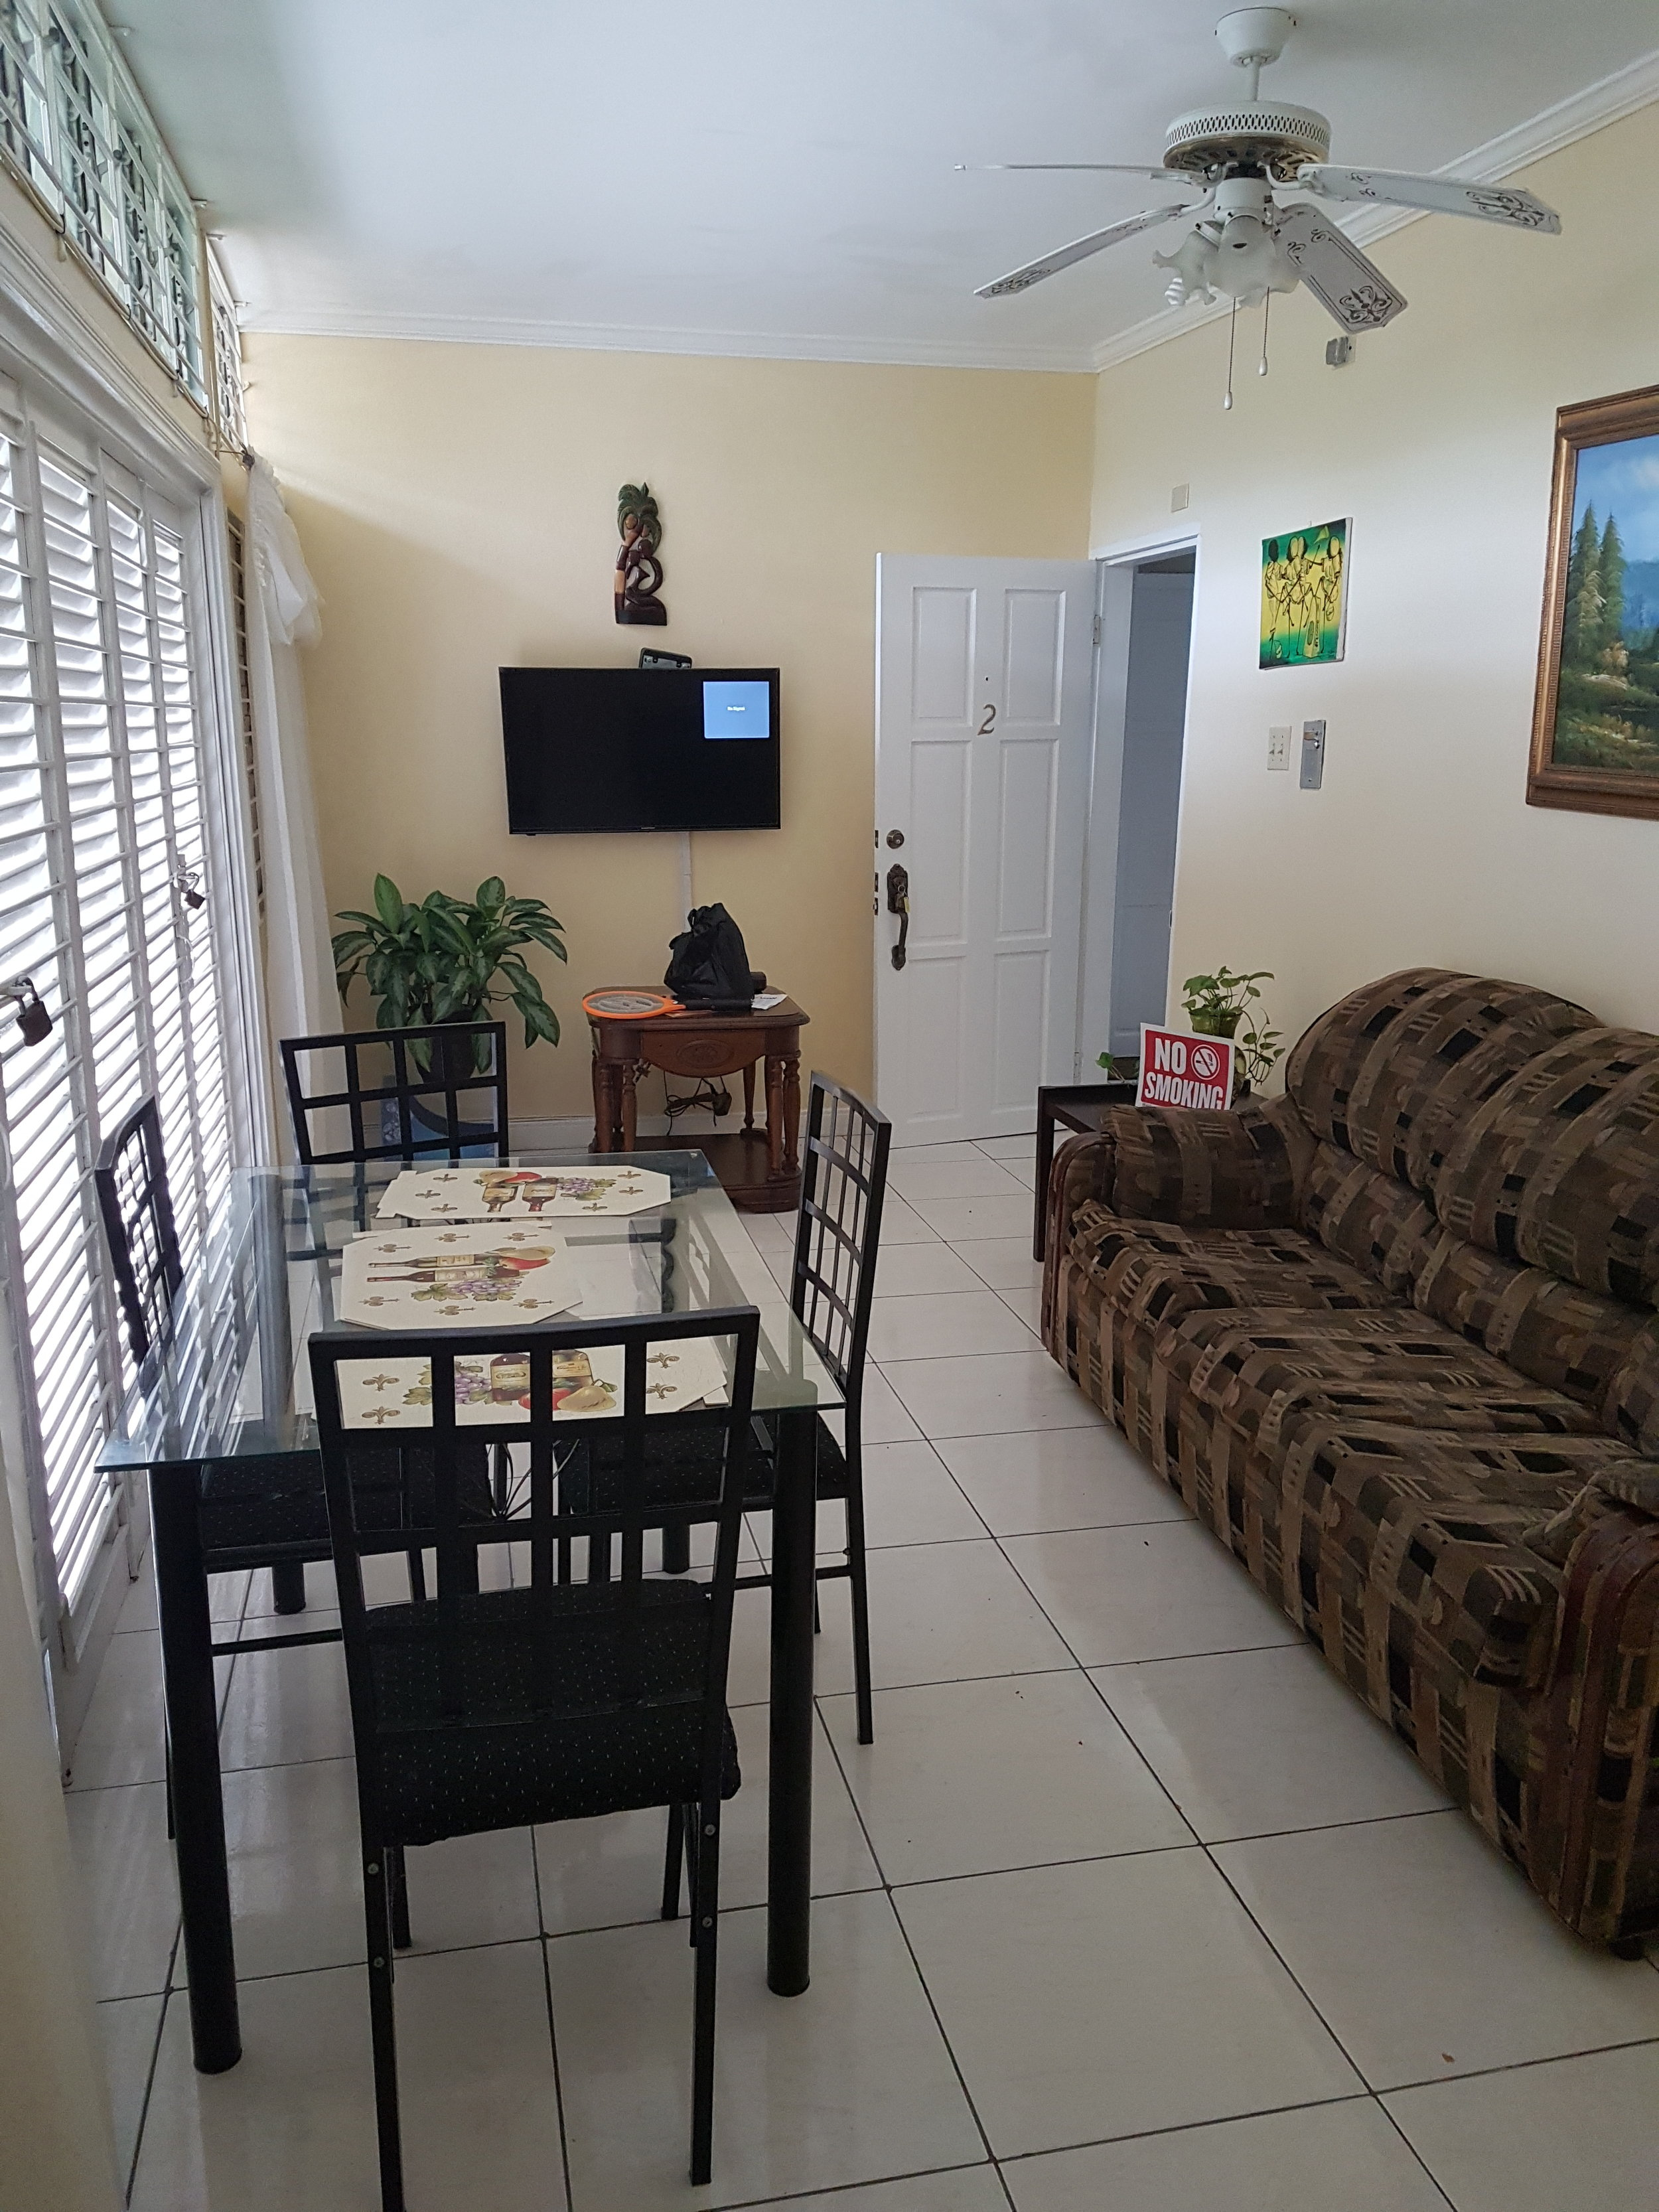 This is a cute property on Air BnB that I stayed at in Jamaica. If you don't like the feel of a resort, these apartments make you feel as though you are right at home.